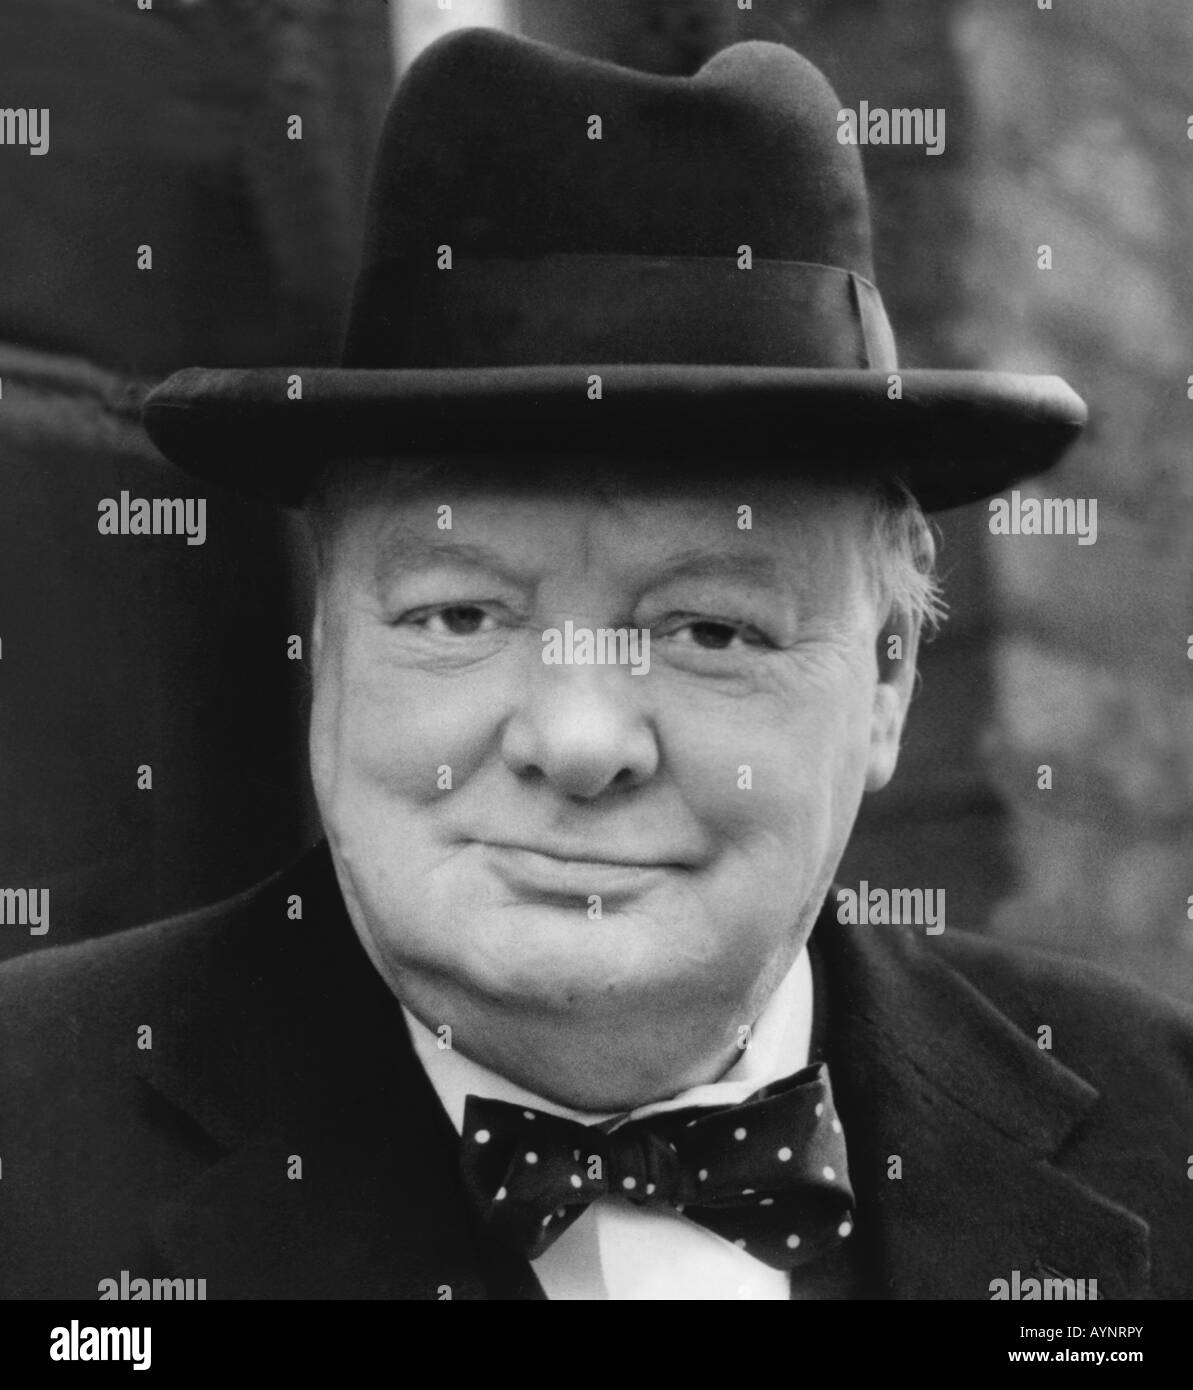 sir-winston-churchill-british-wartime-le